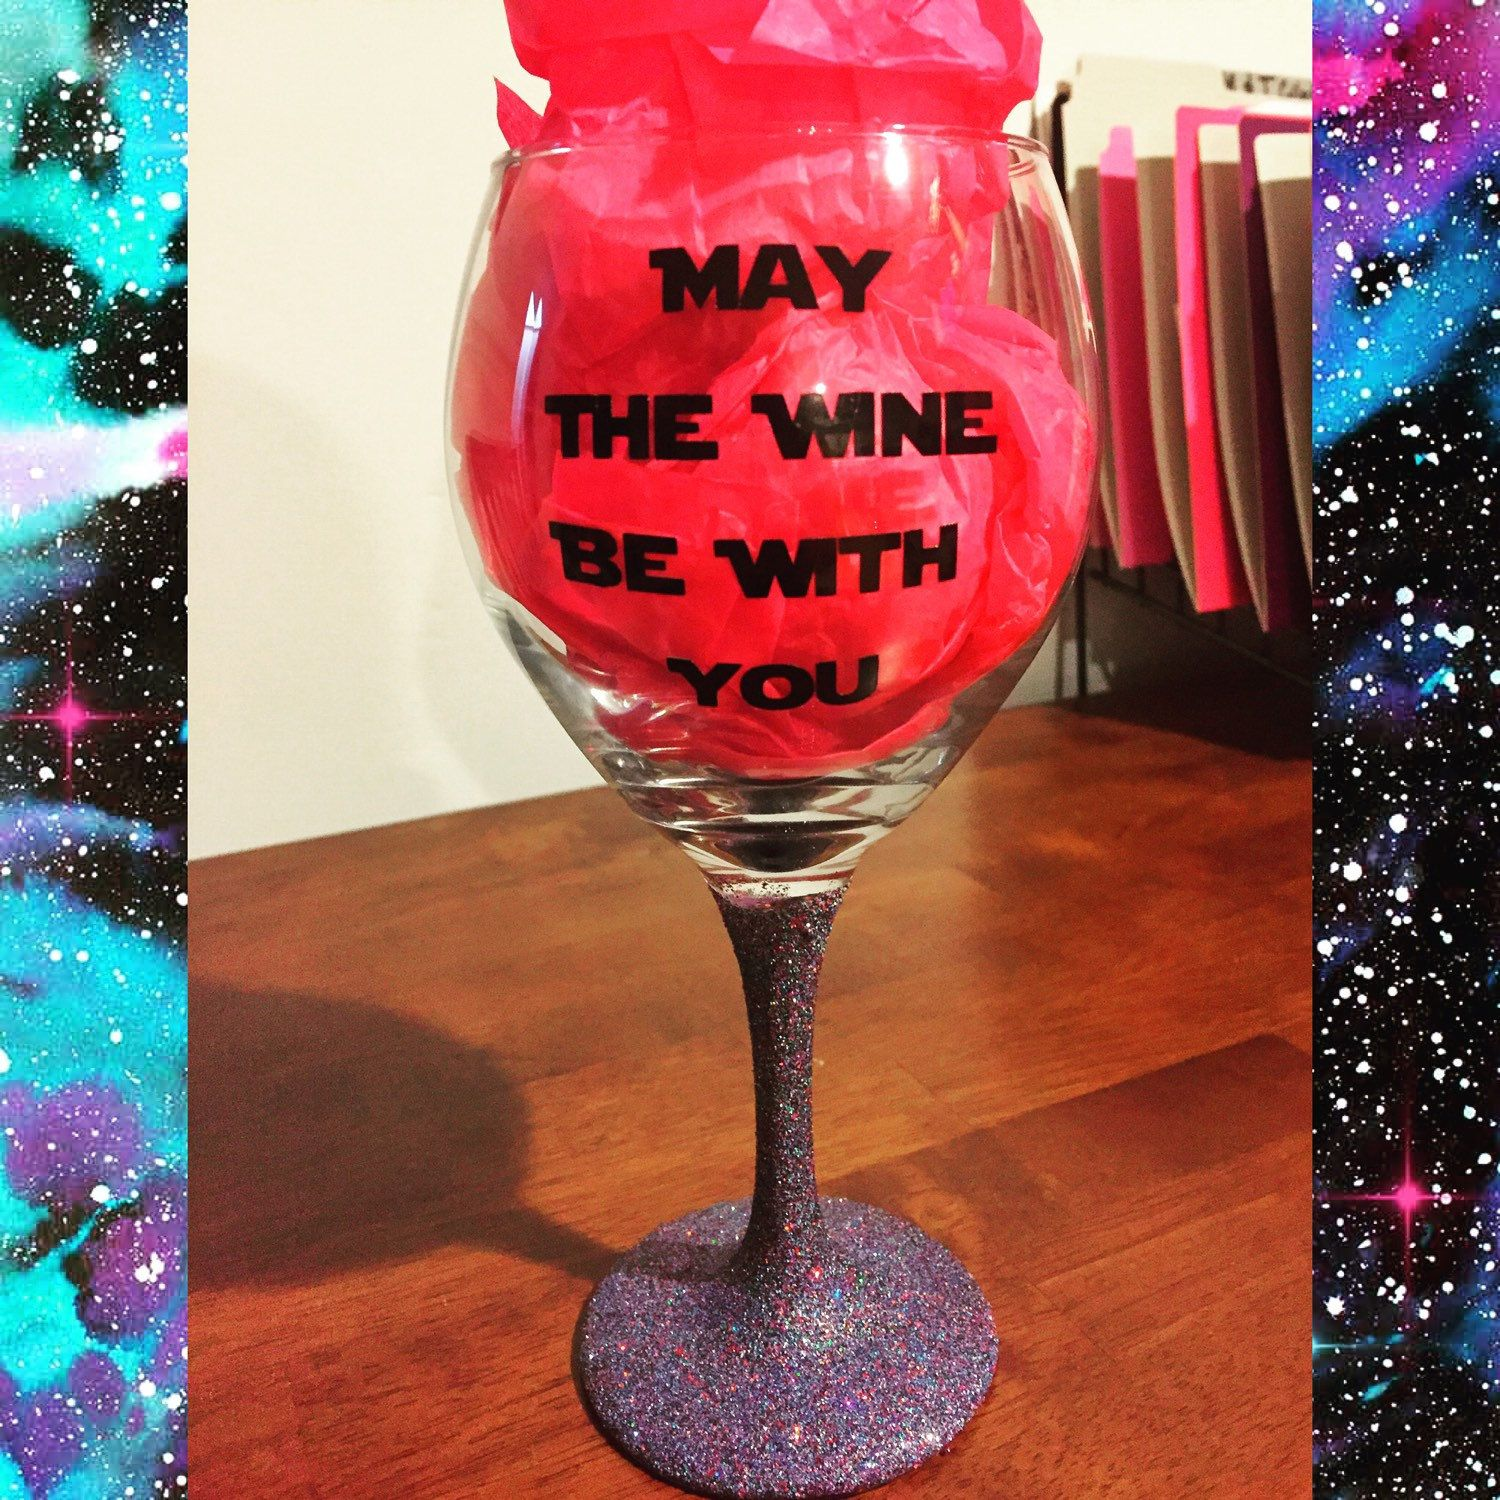 Star Wars Inspired Wine Glass With Galaxy Glitter May The Wine Be With You By Mandjcollective On Wine Glass Crafts Decorated Wine Glasses Wine Glass Vinyl